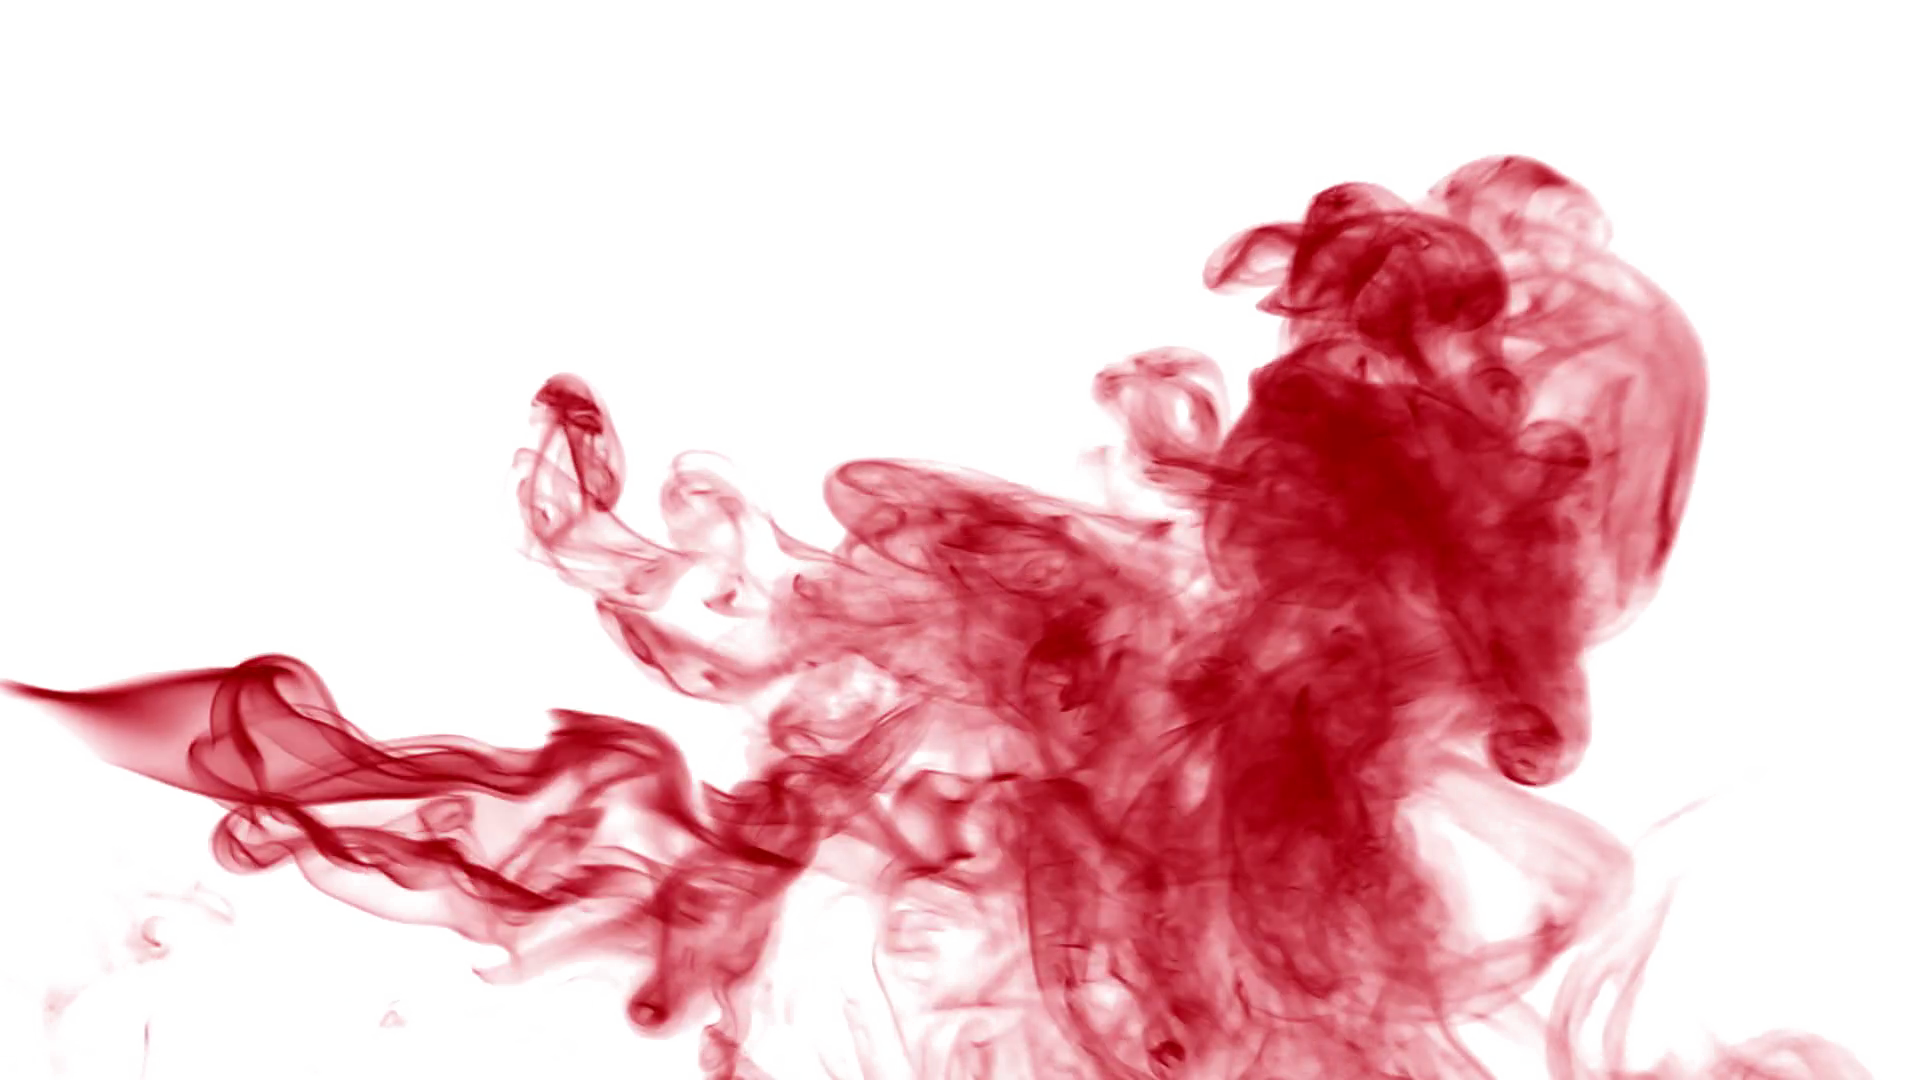 Transparent picture mart. Red smoke png